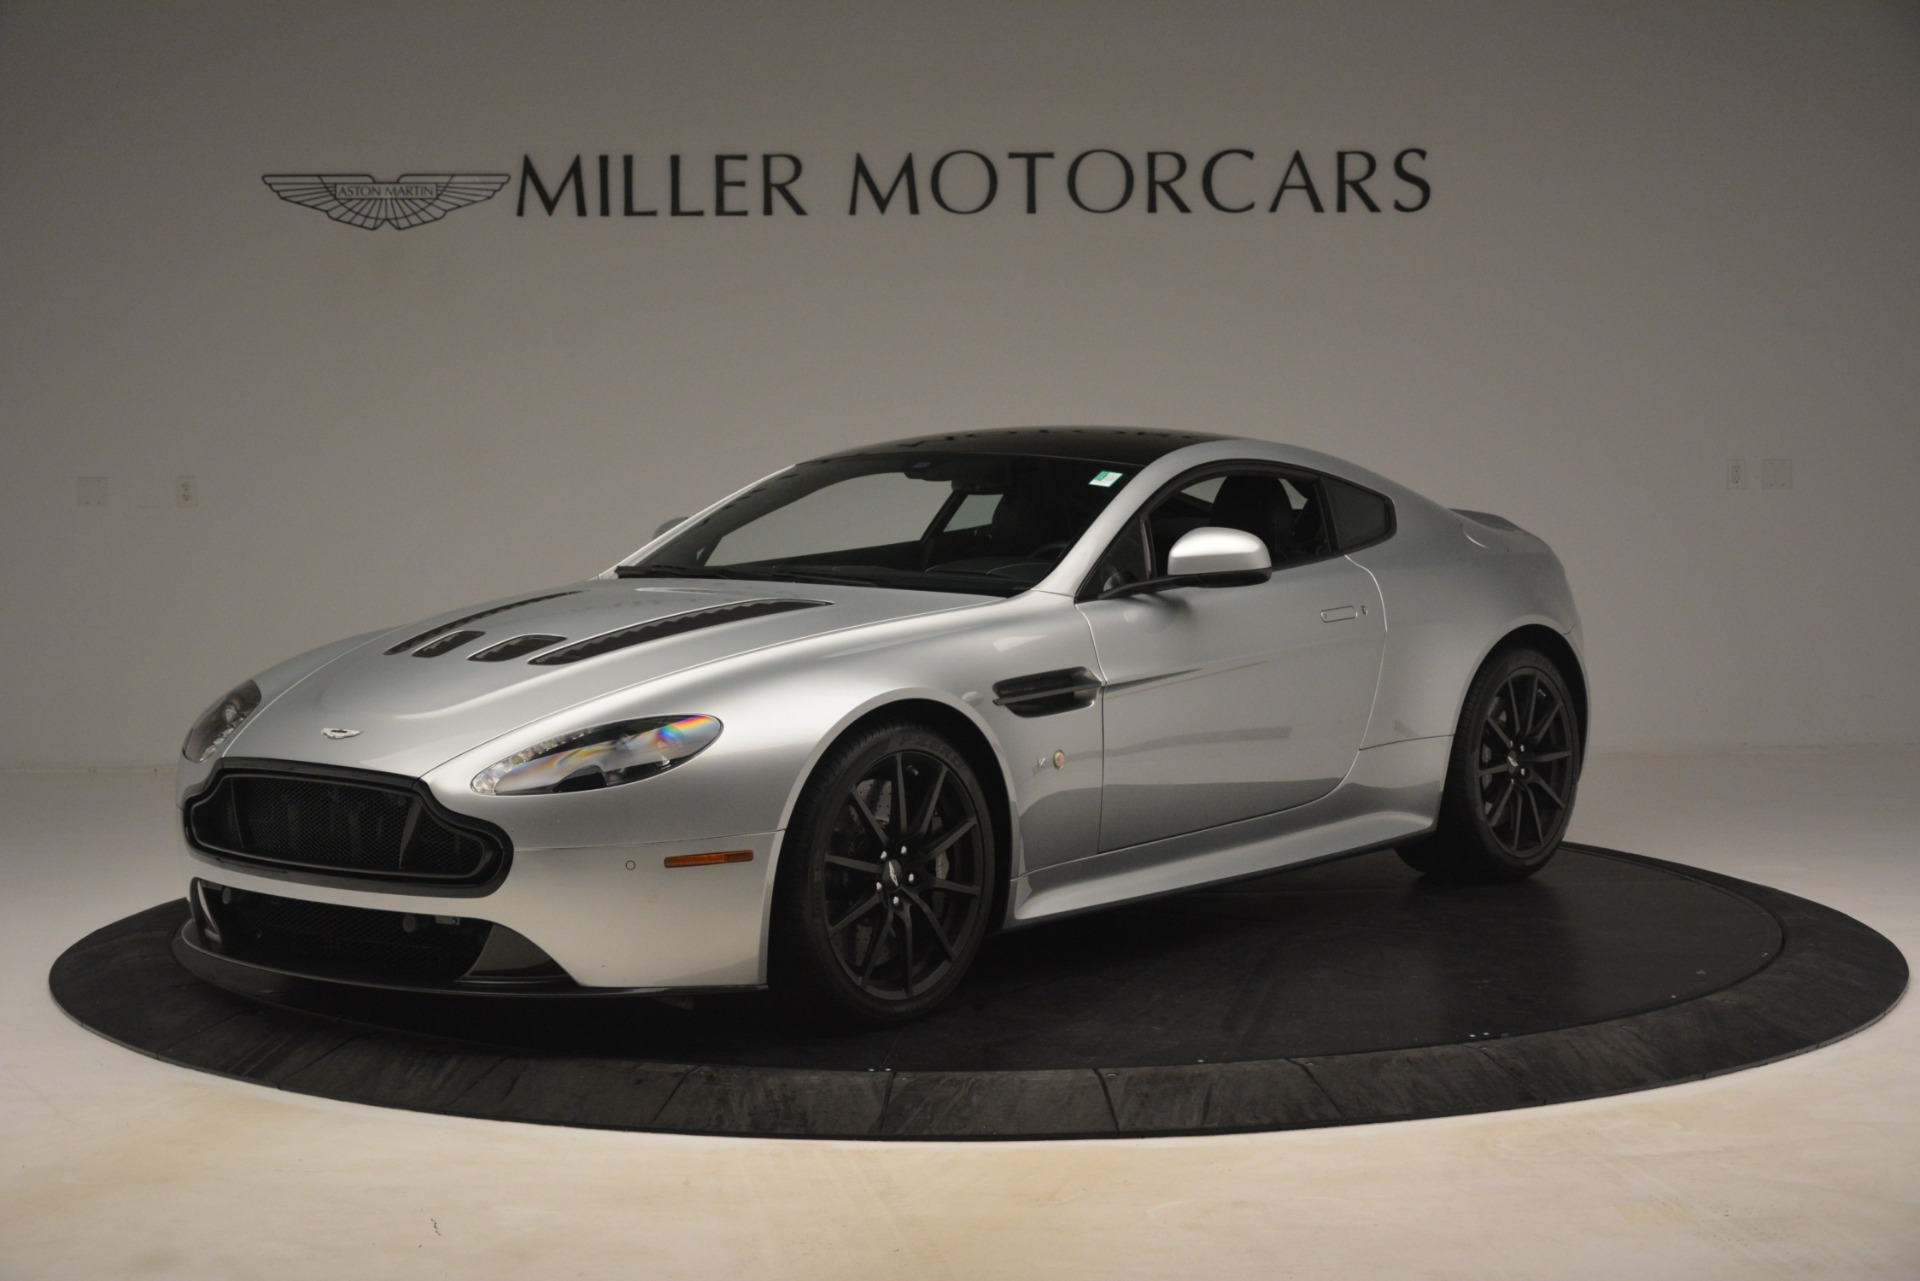 Used 2015 Aston Martin V12 Vantage S Coupe For Sale In Greenwich, CT. Alfa Romeo of Greenwich, 7577 3206_main